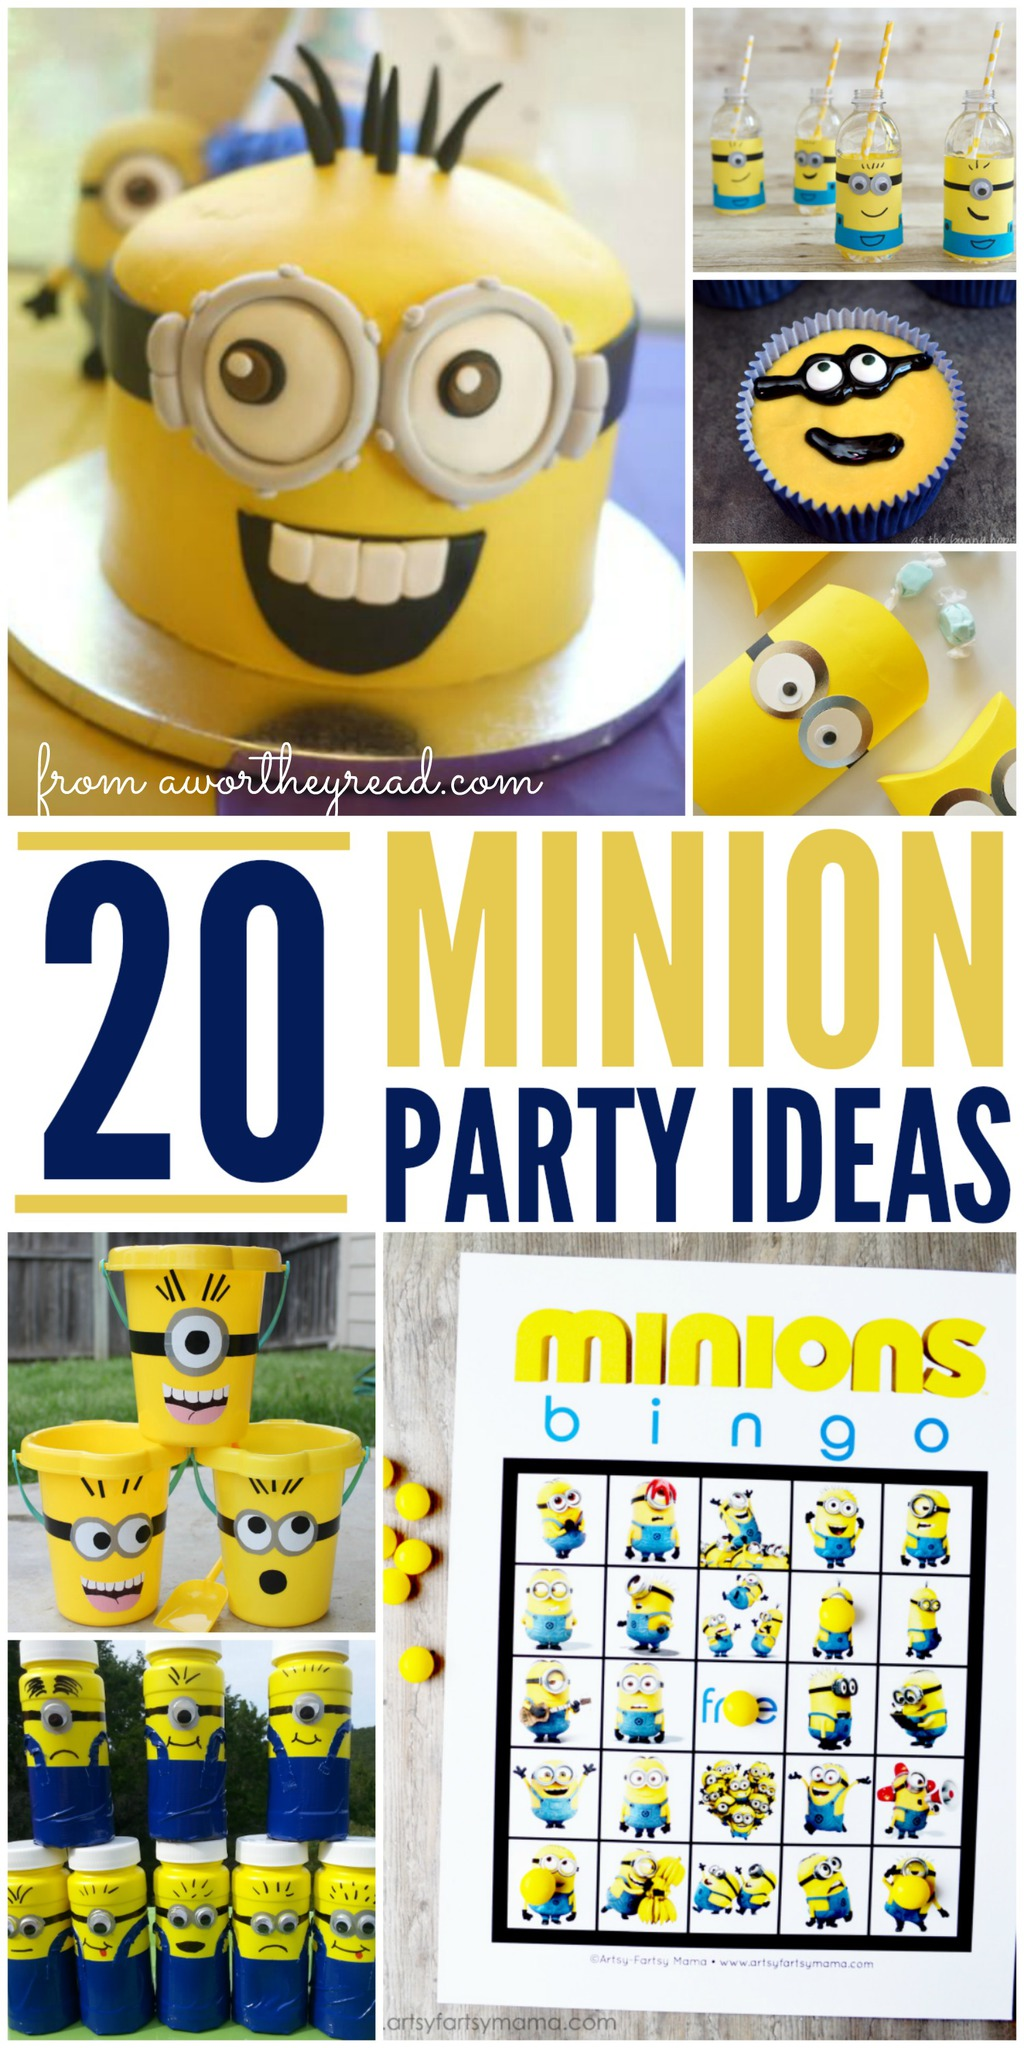 20 Minion Party Ideas | Minions Movie